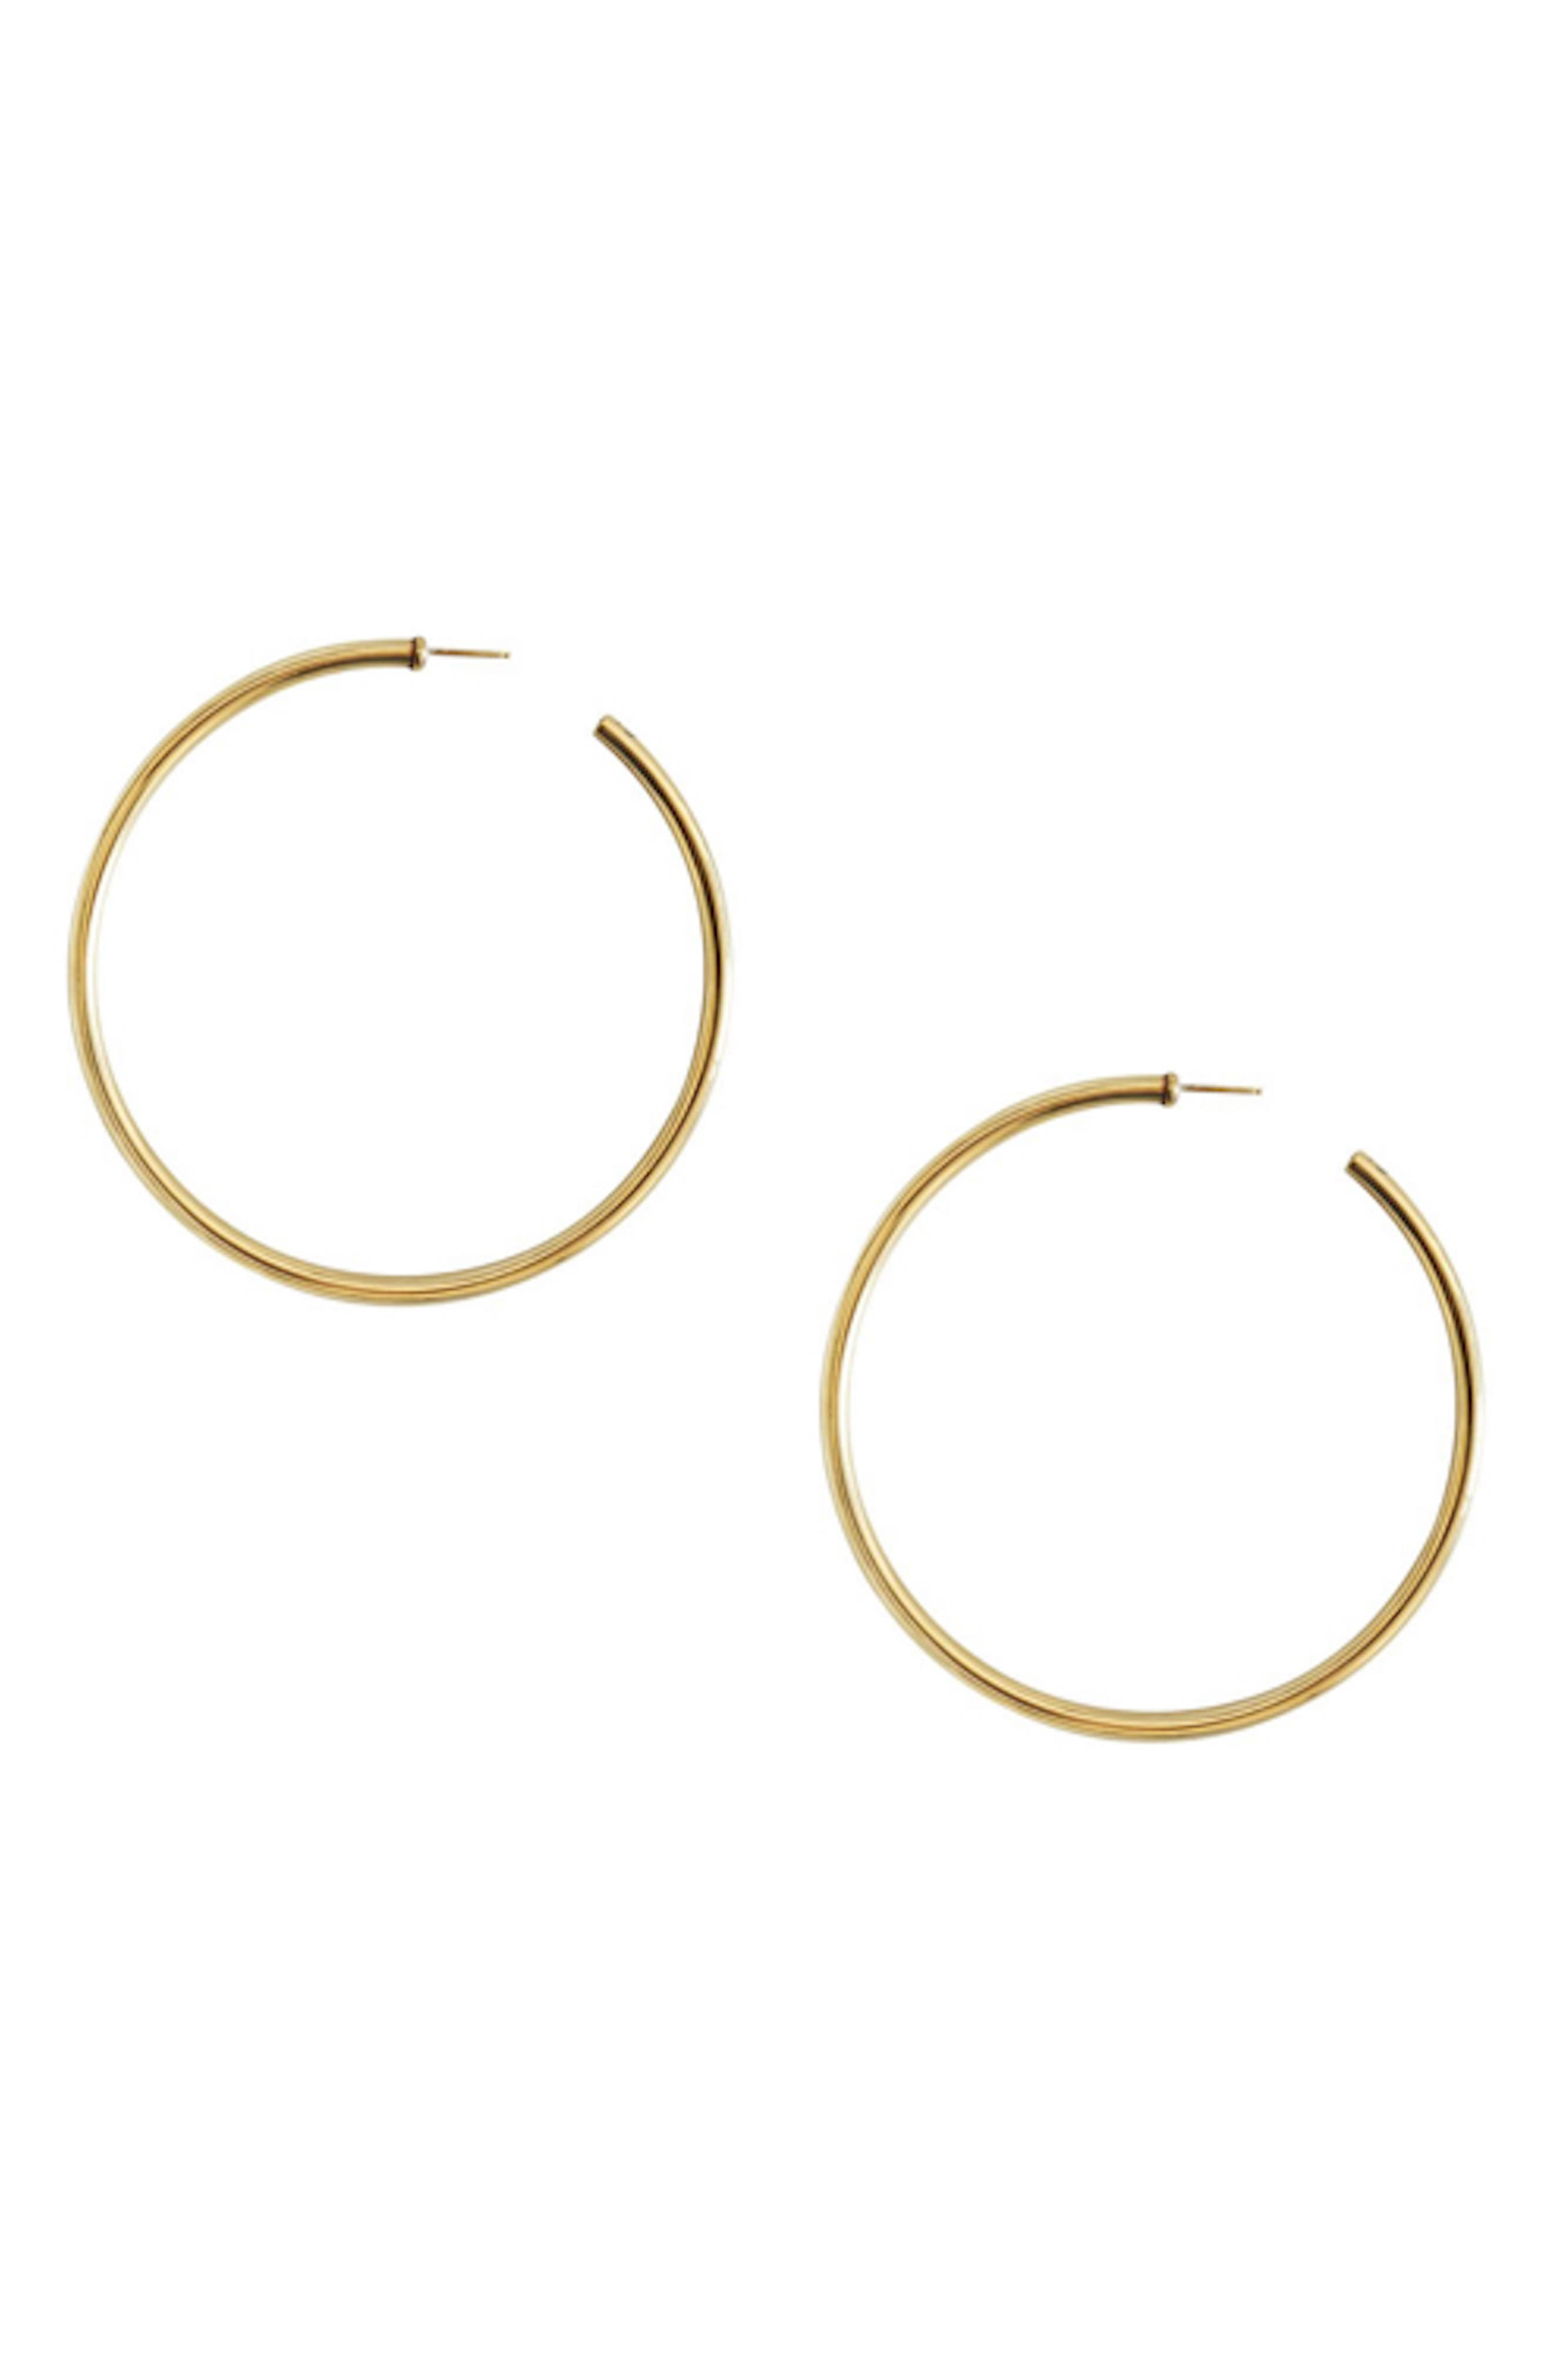 Extra-Large Classic Hoop Earrings,                         Main,                         color, BRASS